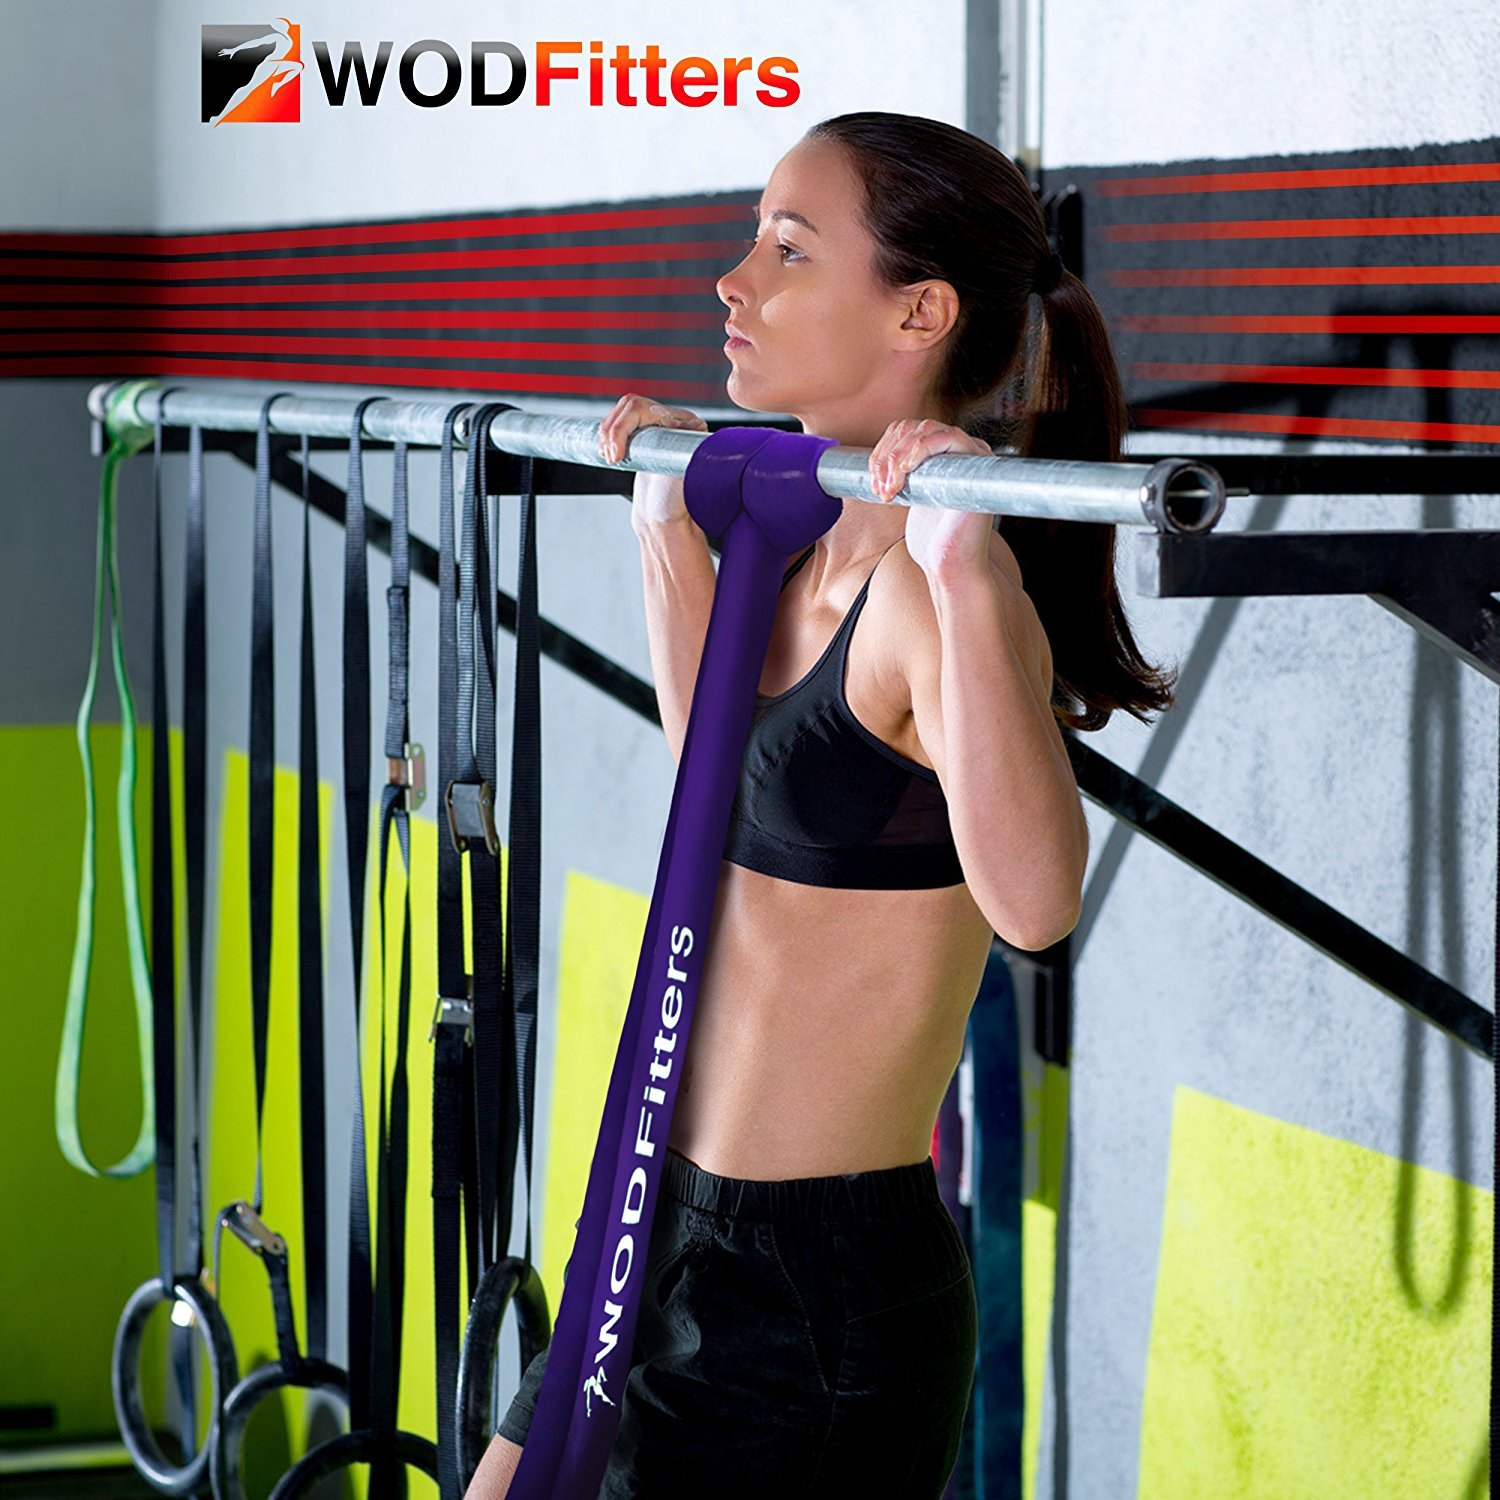 WODFitters Black Band Resistance Bands Black - Single Band Assisted Pull-up Resistance Band Cross Fitness Training Power-Lifting - by WODFitters (Image #10)